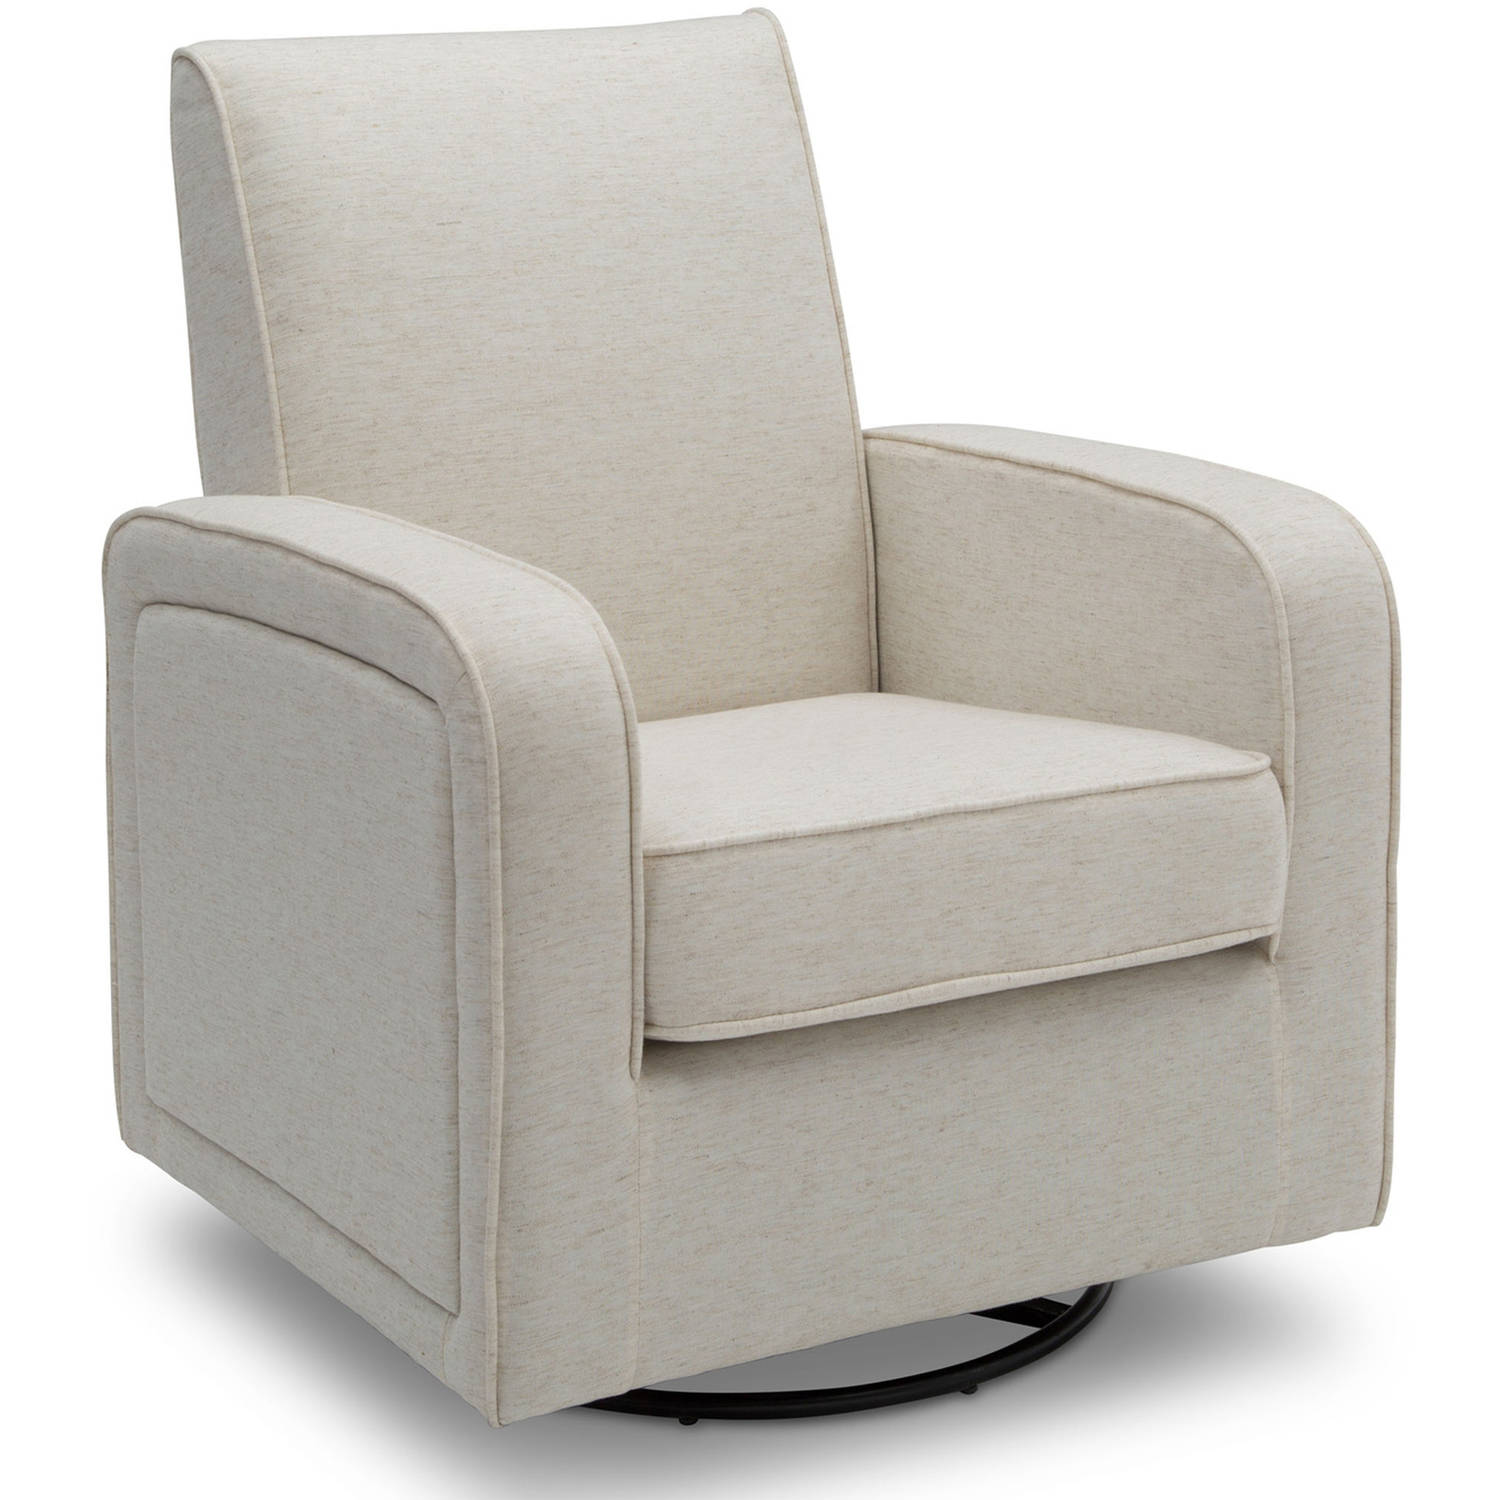 Delta Furniture Charlotte Glider Swivel Rocker Chair, (Choose Your Color)